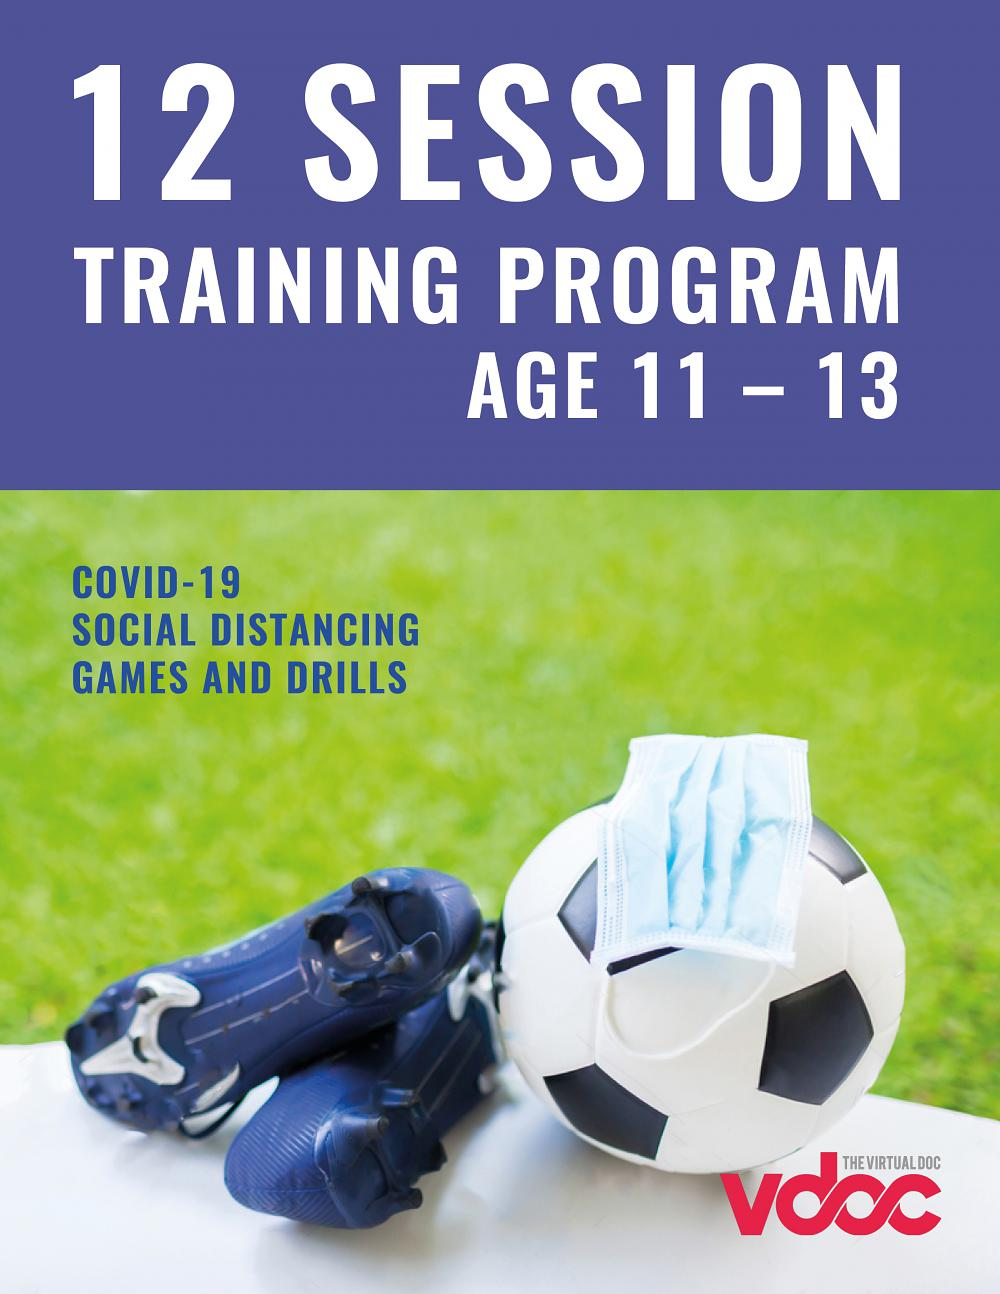 12 Session COVID Training Program (Ages 11 - 13)